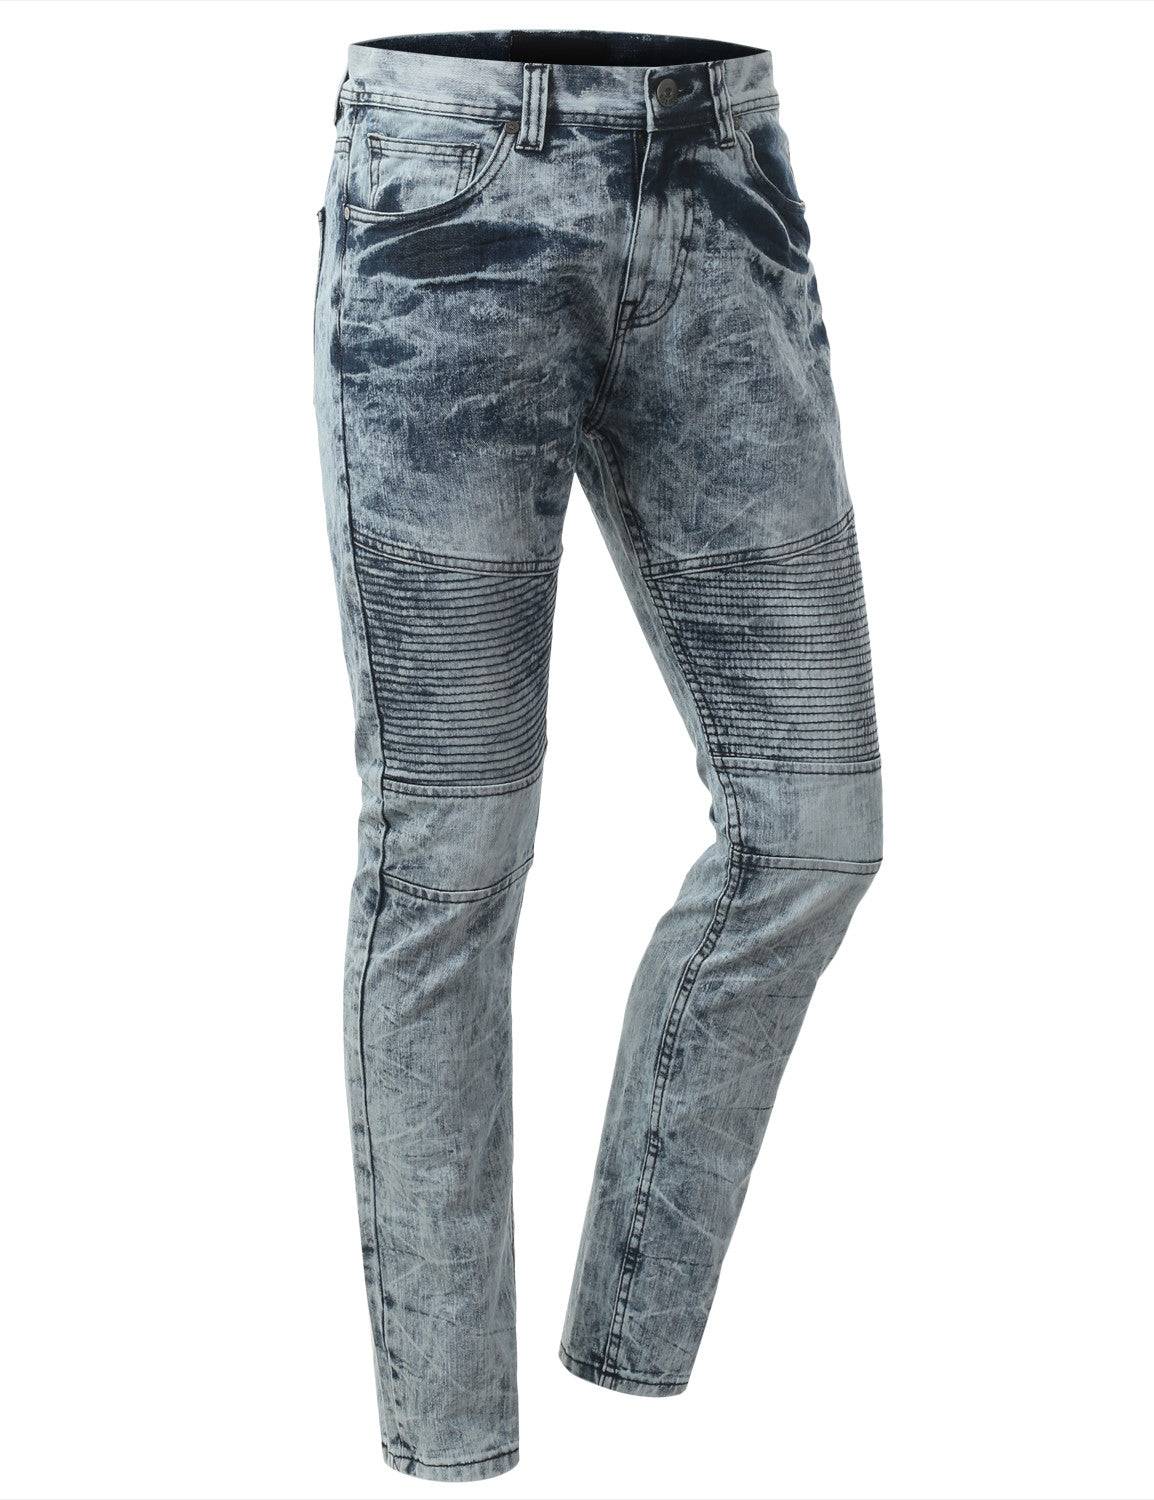 Straight Slim Fit Acid Wash Biker Jeans - URBANCREWS - 13